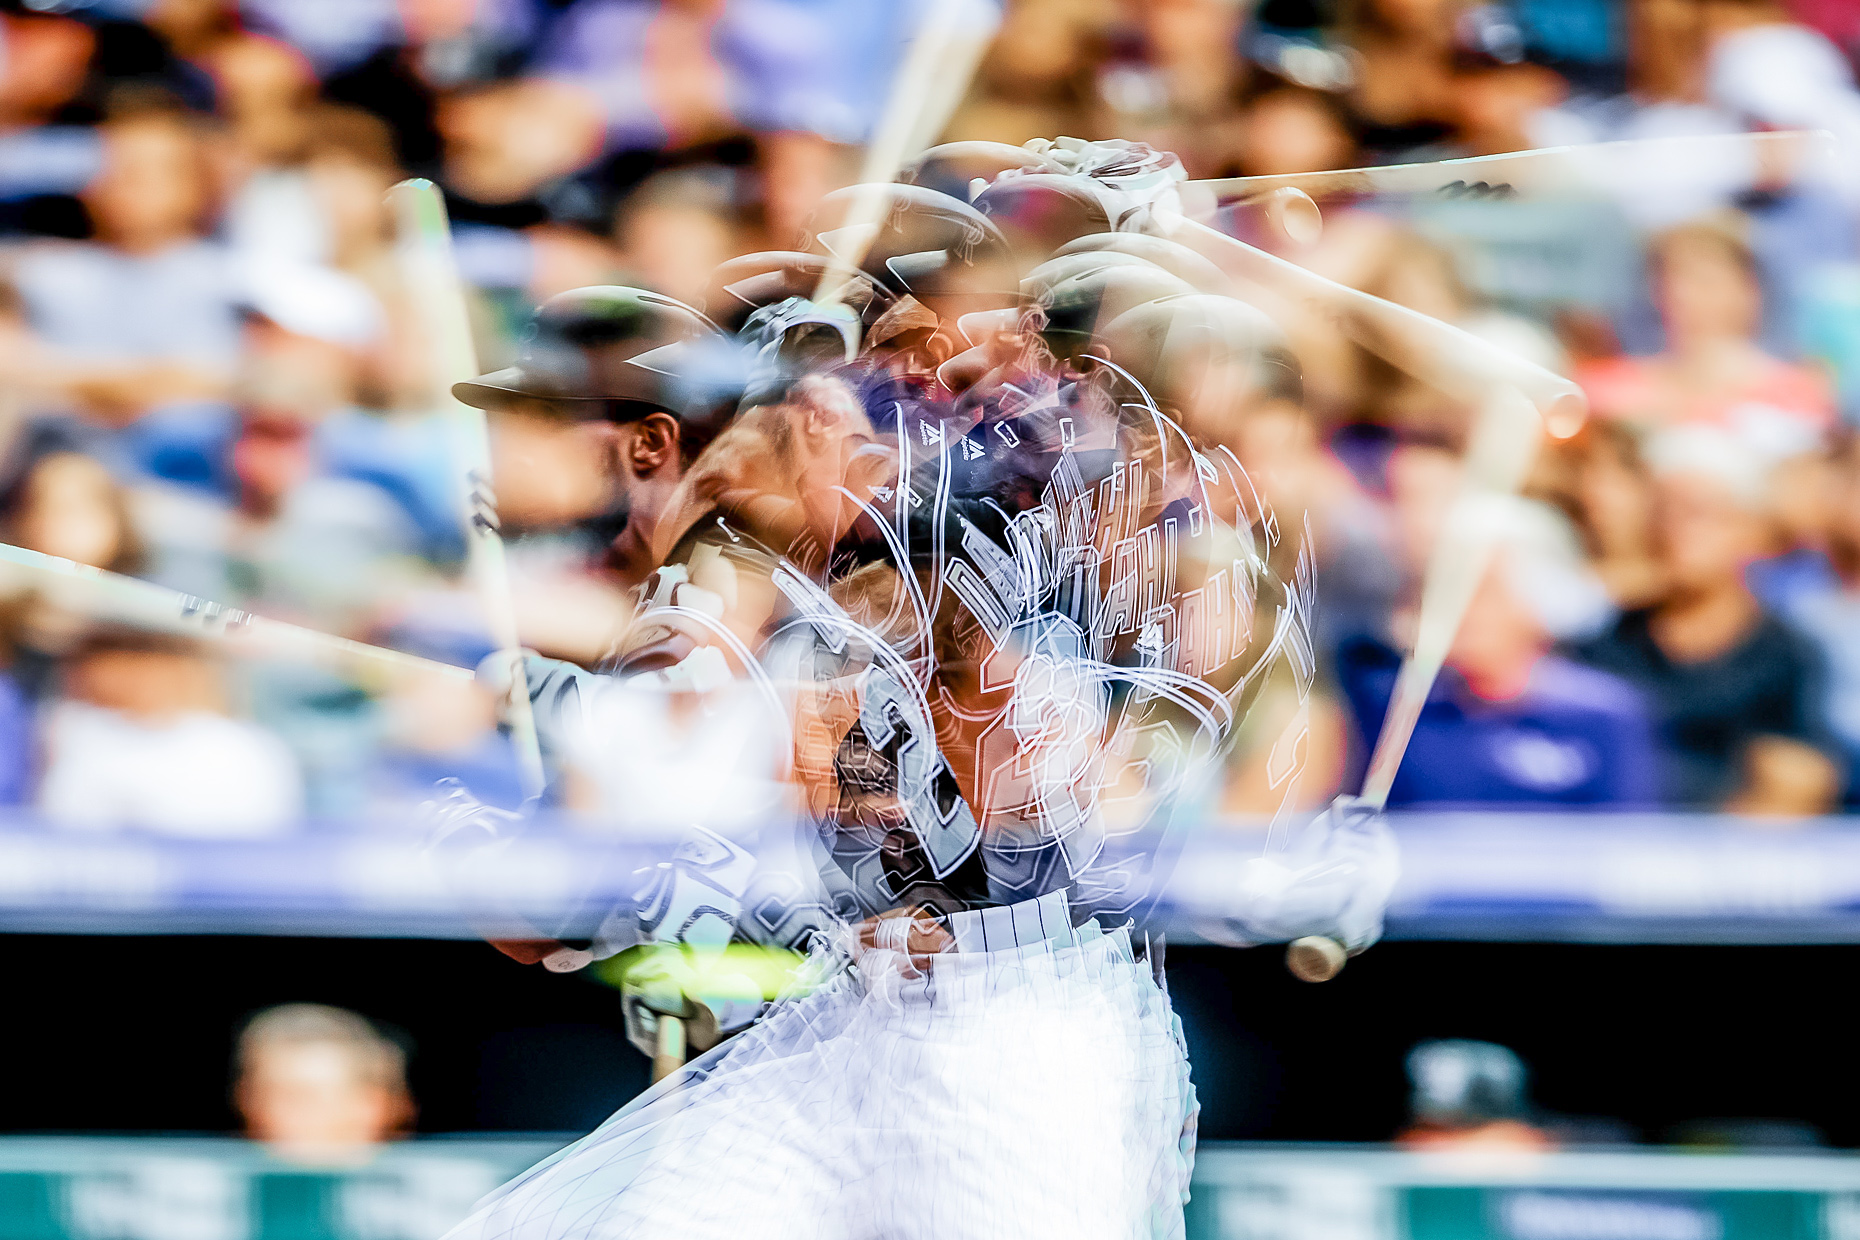 chip litherland lock and land rockies sports photography denver 0005.JPG